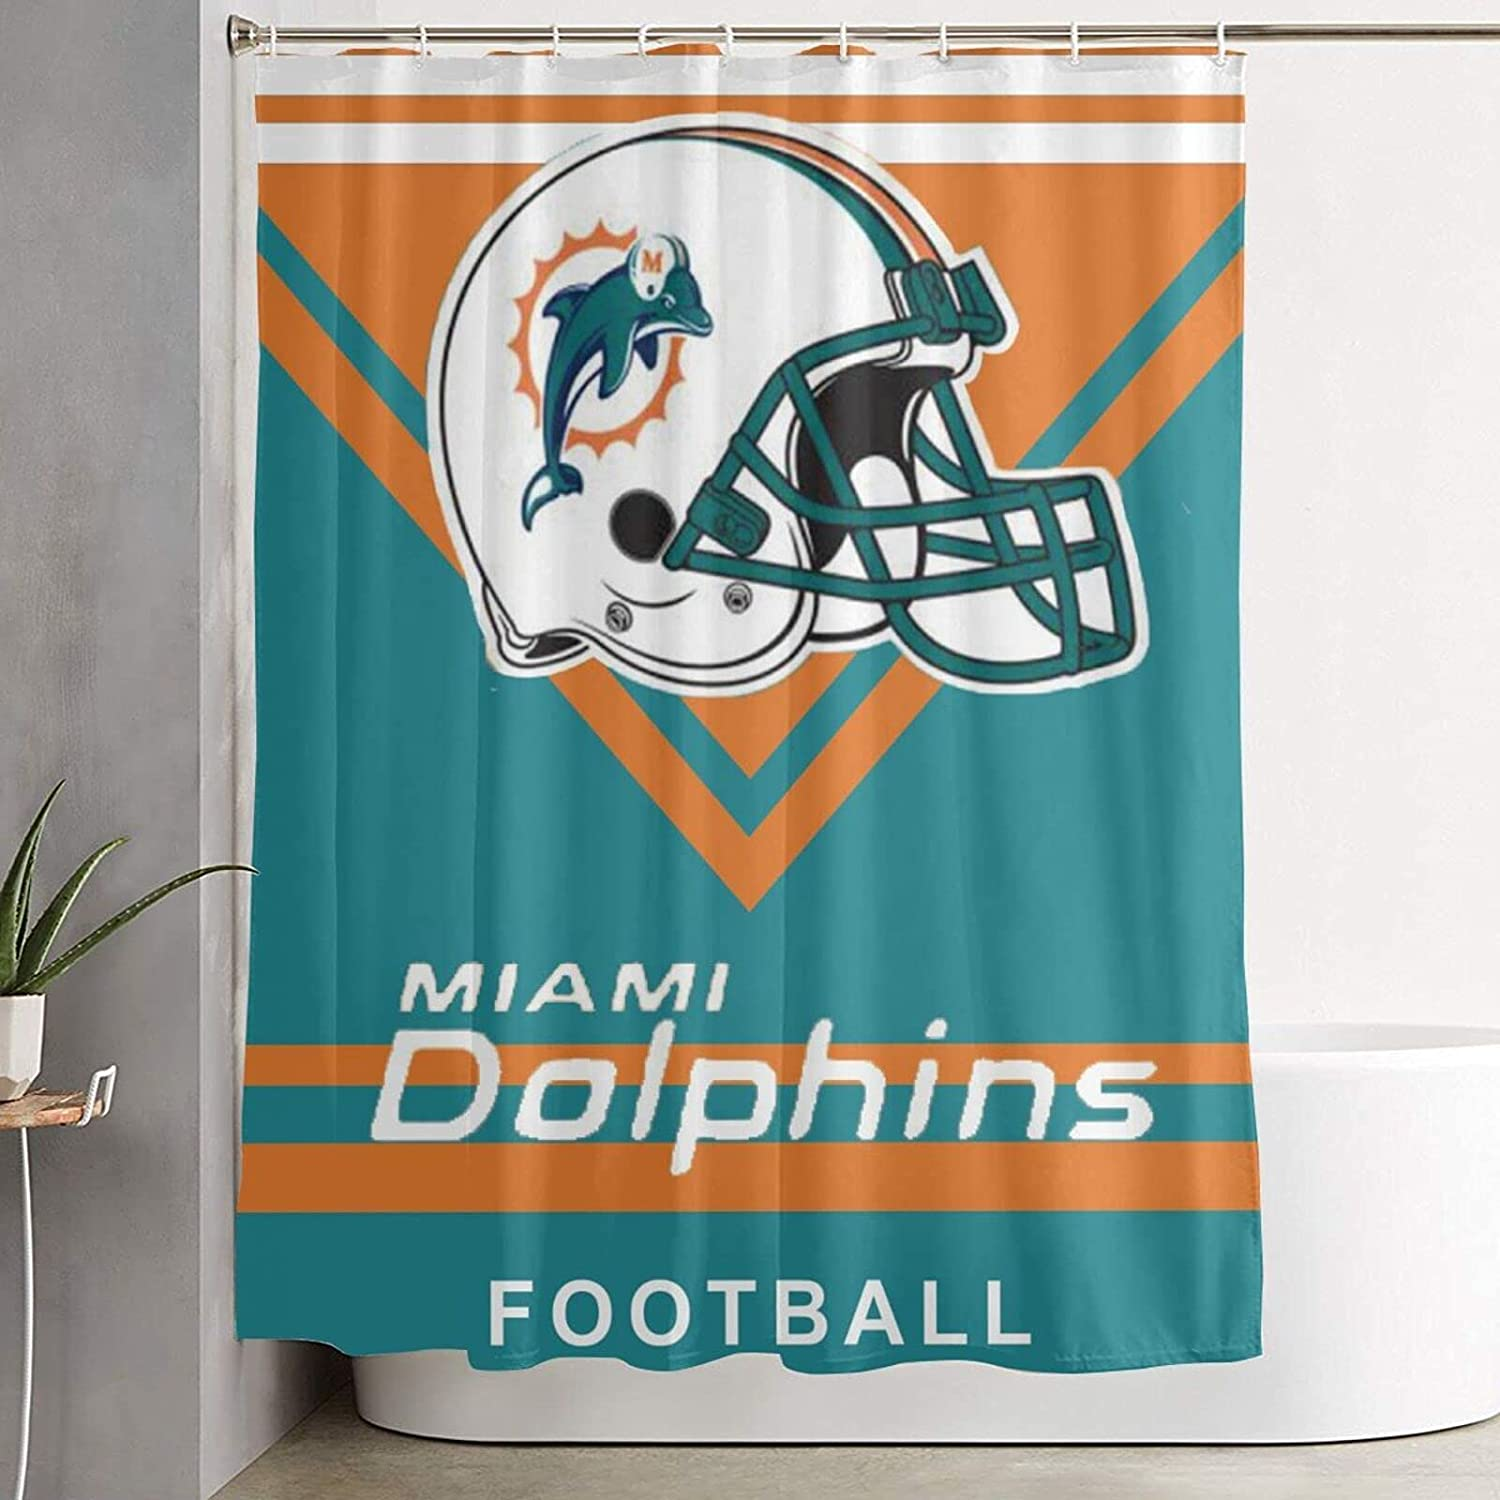 Shower Curtain OFFicial store Miami Dolphins F Stall Max 71% OFF Waterproof Bathroom